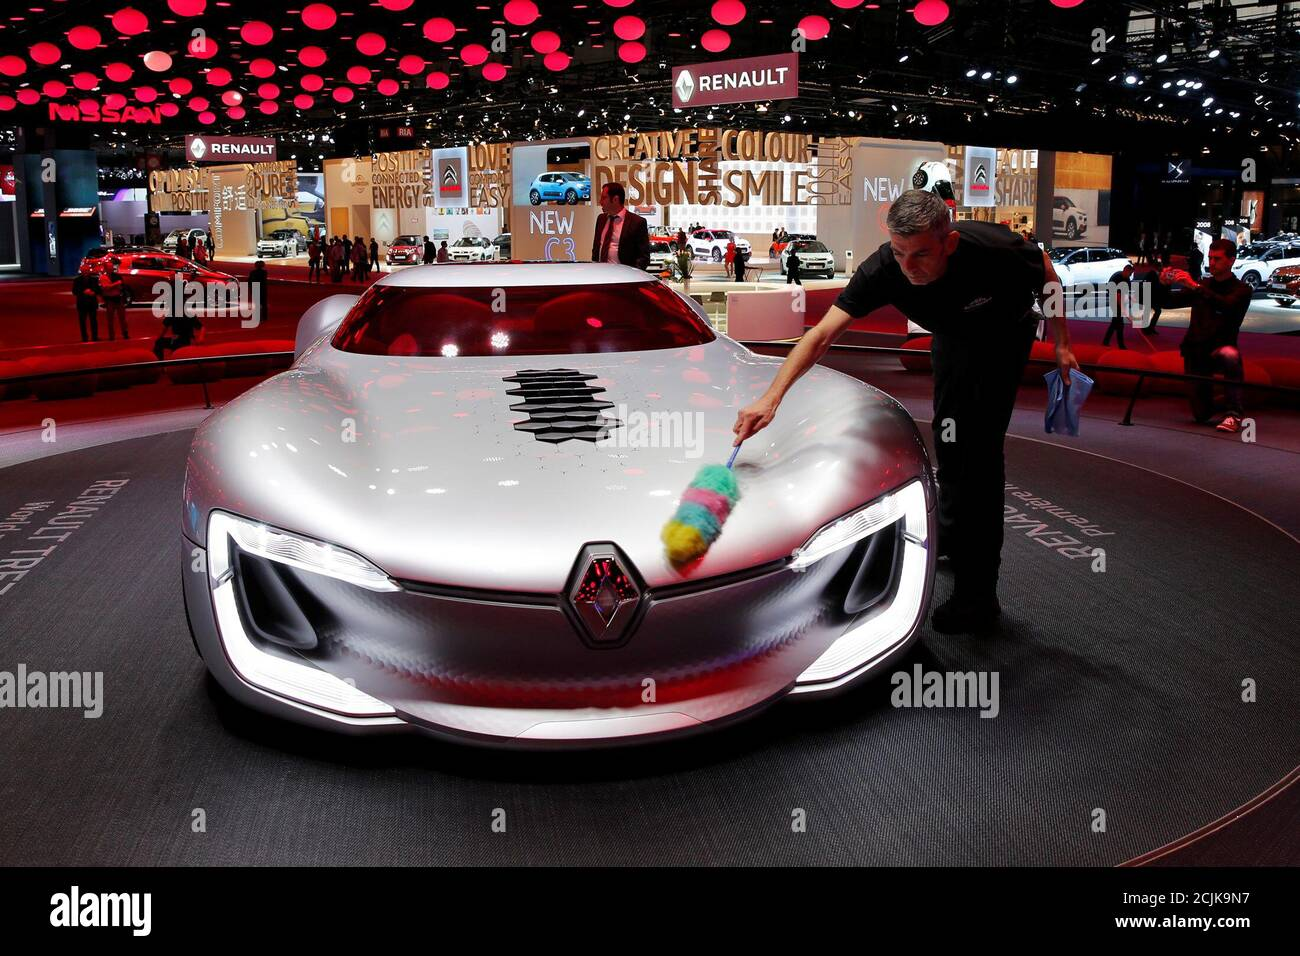 A man cleans the concept car Renault Trezor displayed on media day at the Paris auto show, in Paris, France, September 30, 2016. REUTERS/Benoit Tessier Banque D'Images